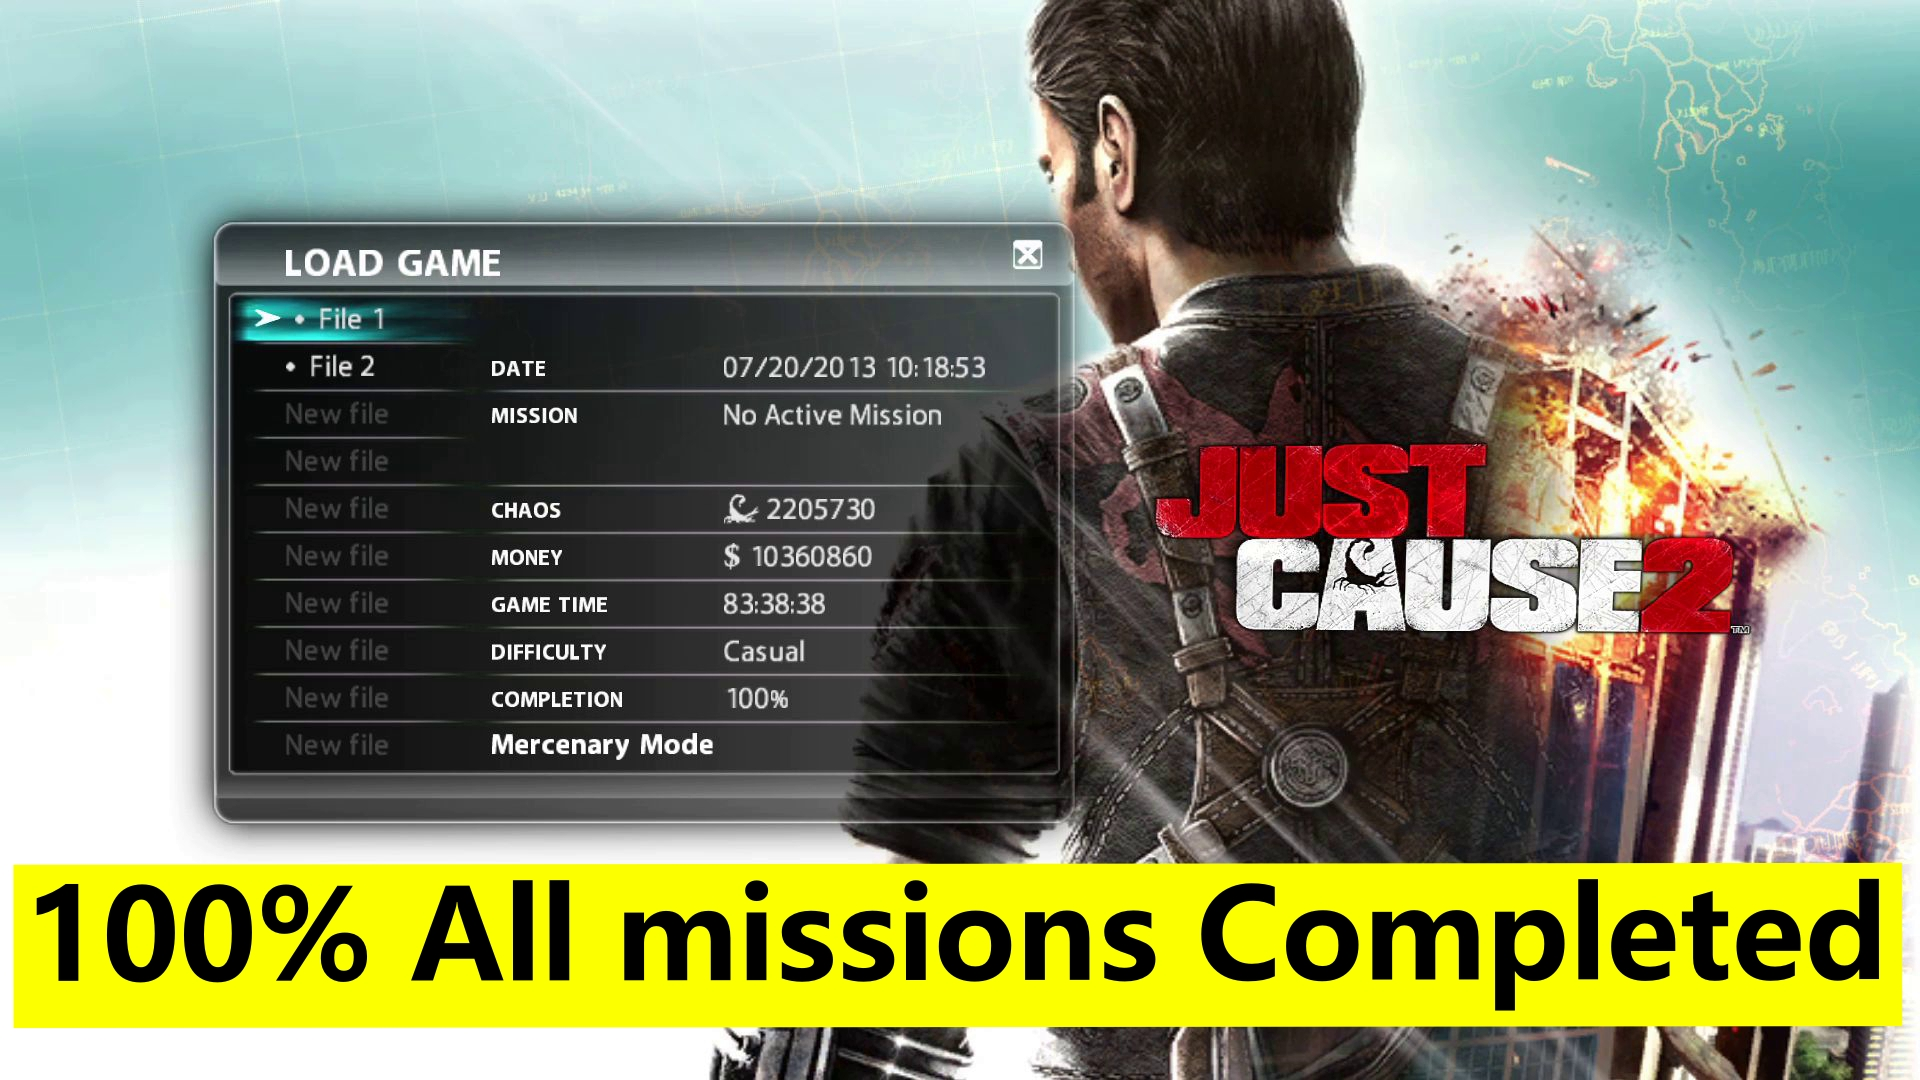 Just Cause 2 100% Savegame PC - All missions completed Savegame